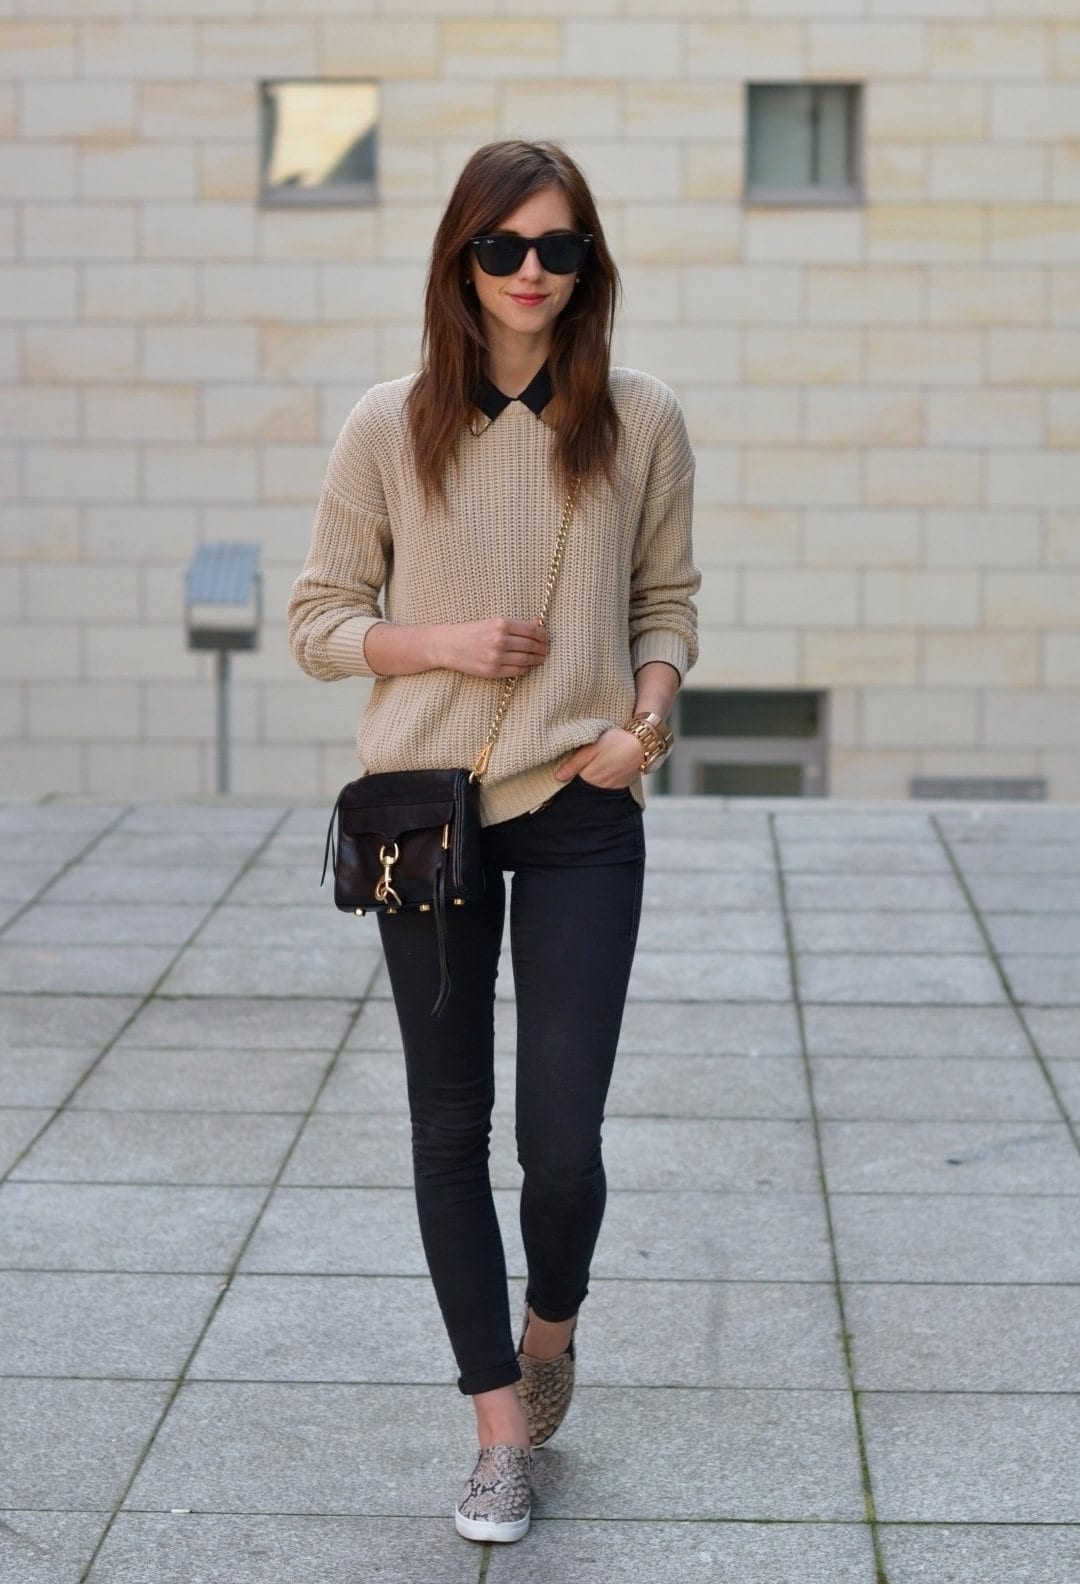 winter outfits office wear casual outfit sneaker sneakers elegant chic business brown shoes workwear jeans fall job slip looks stylish